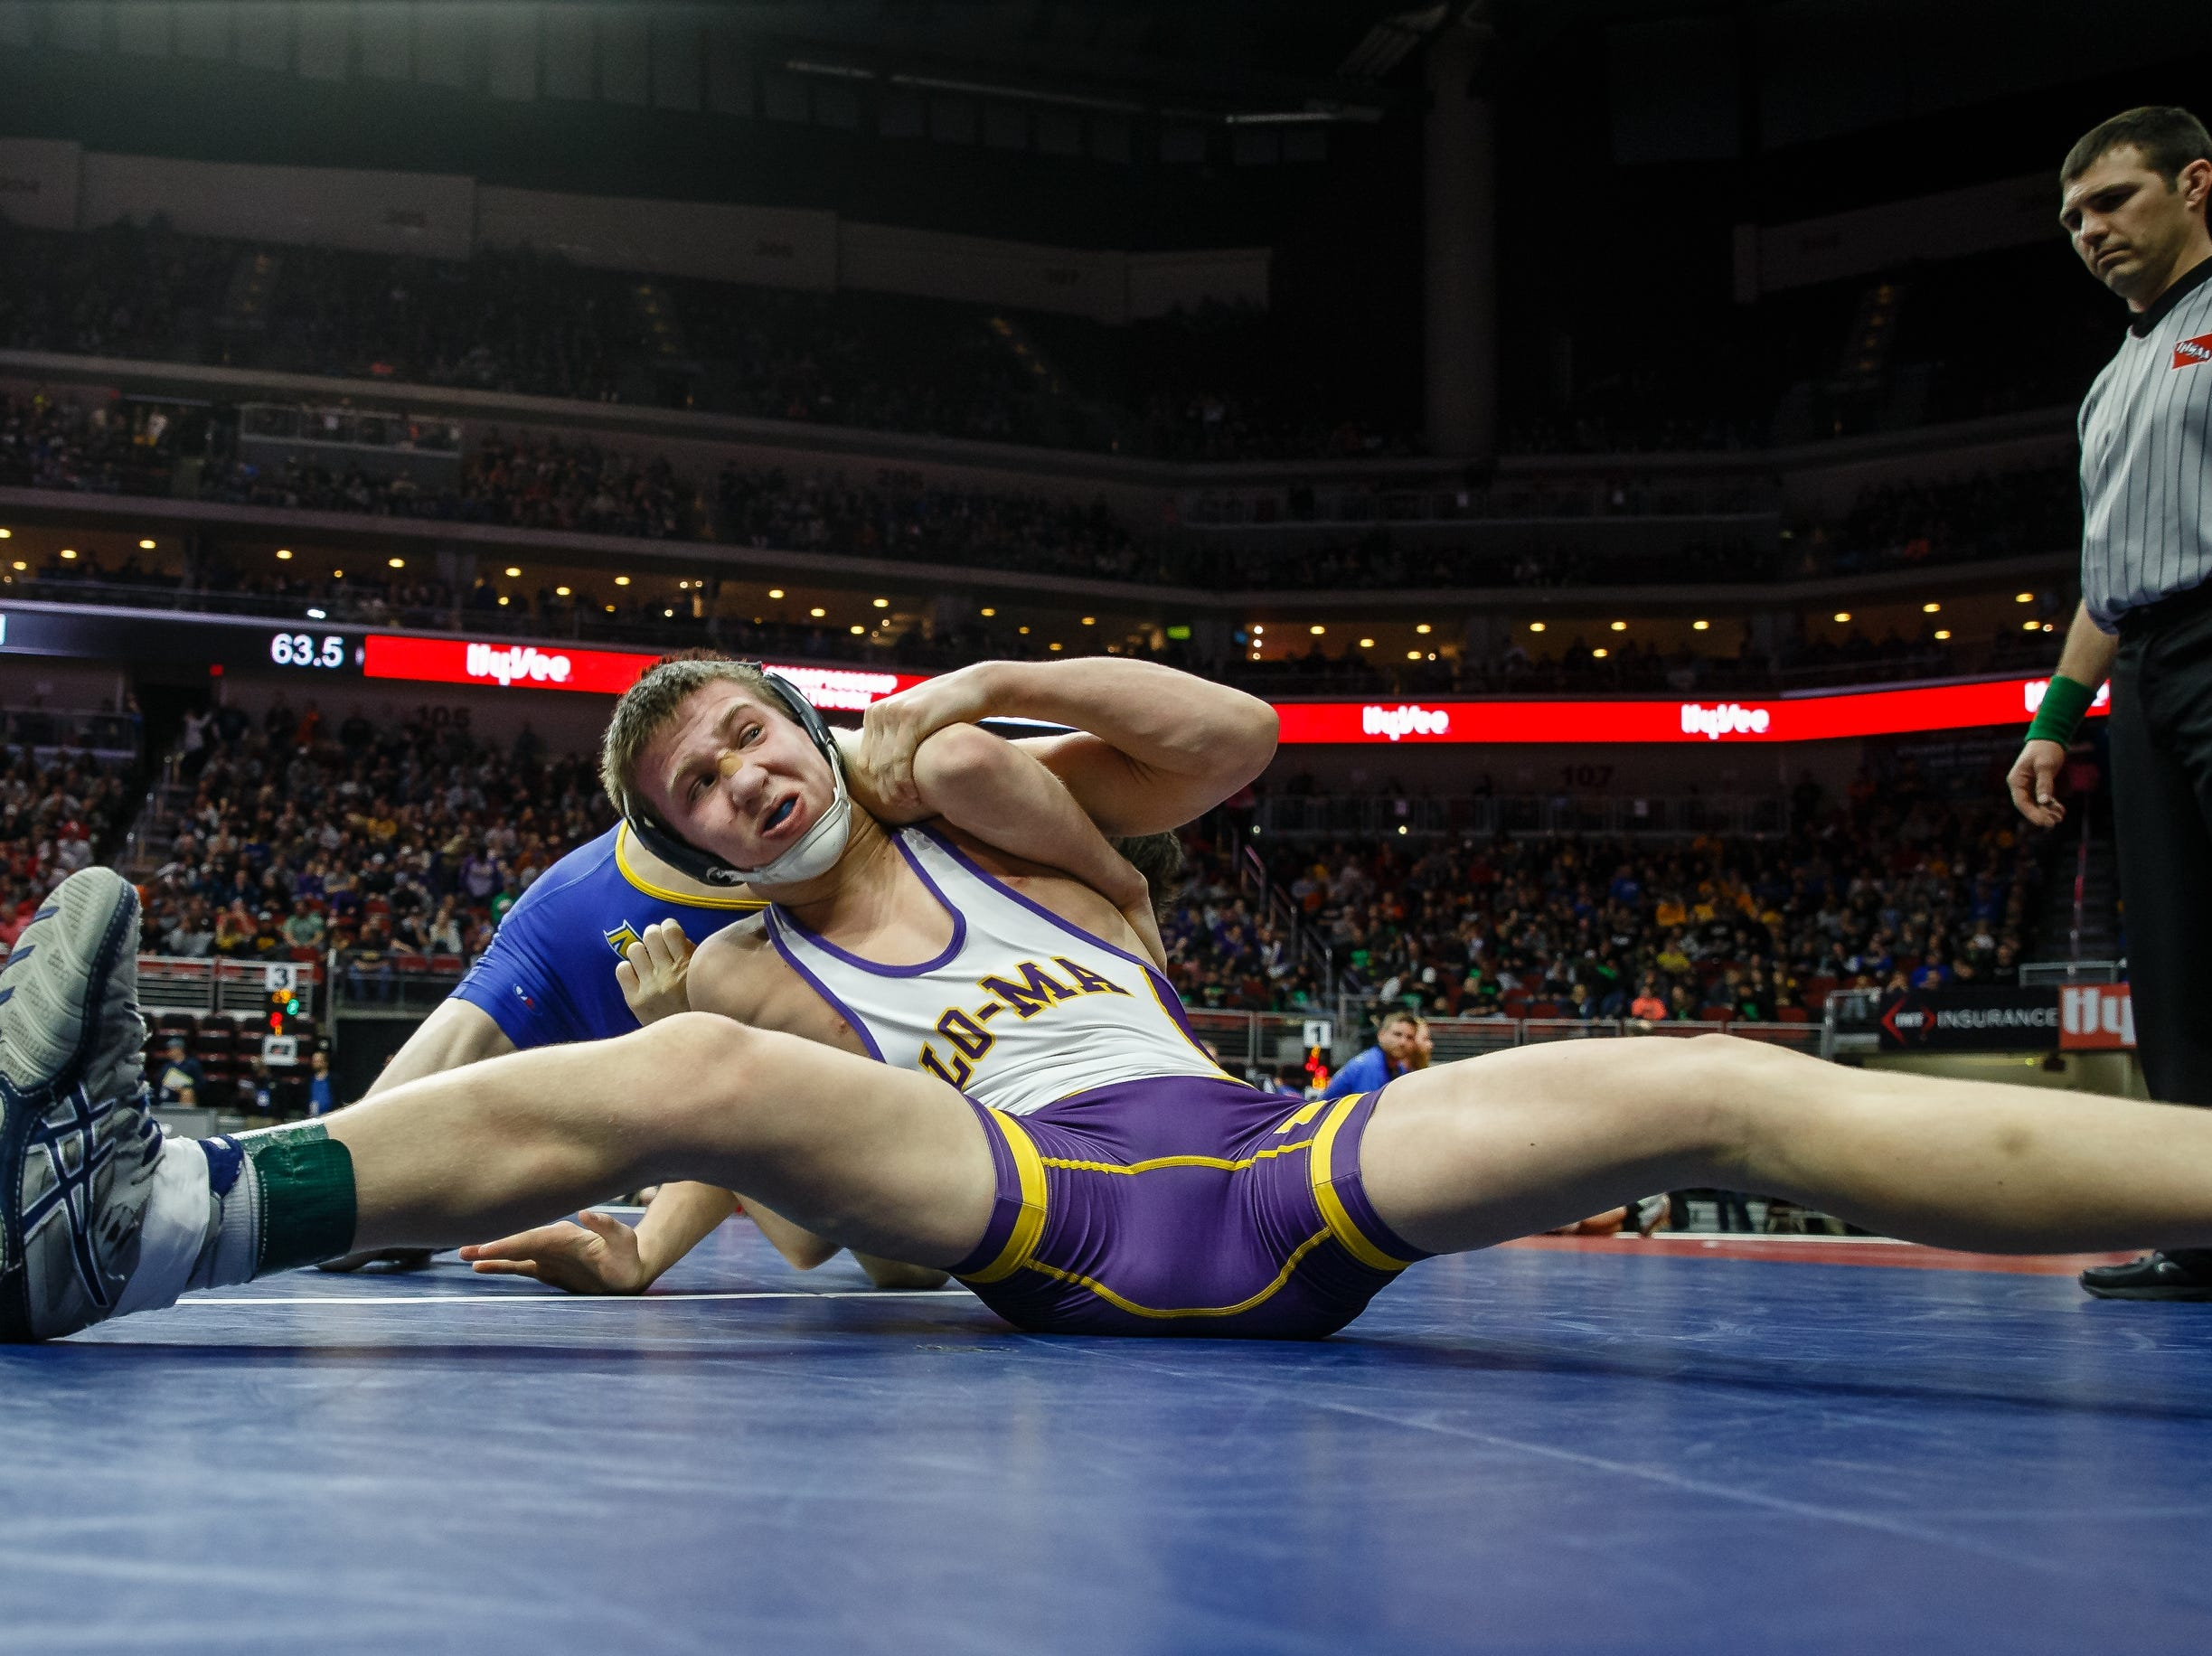 Briar Reisz of Logan-Magnolia wrestles Cole Cassady of Martensdale, St. Mary's during their class 1A 126 pound state championship semi-final match on Friday, Feb. 15, 2019 in Des Moines. Reisz moves onto the final with a 3-1 decision.